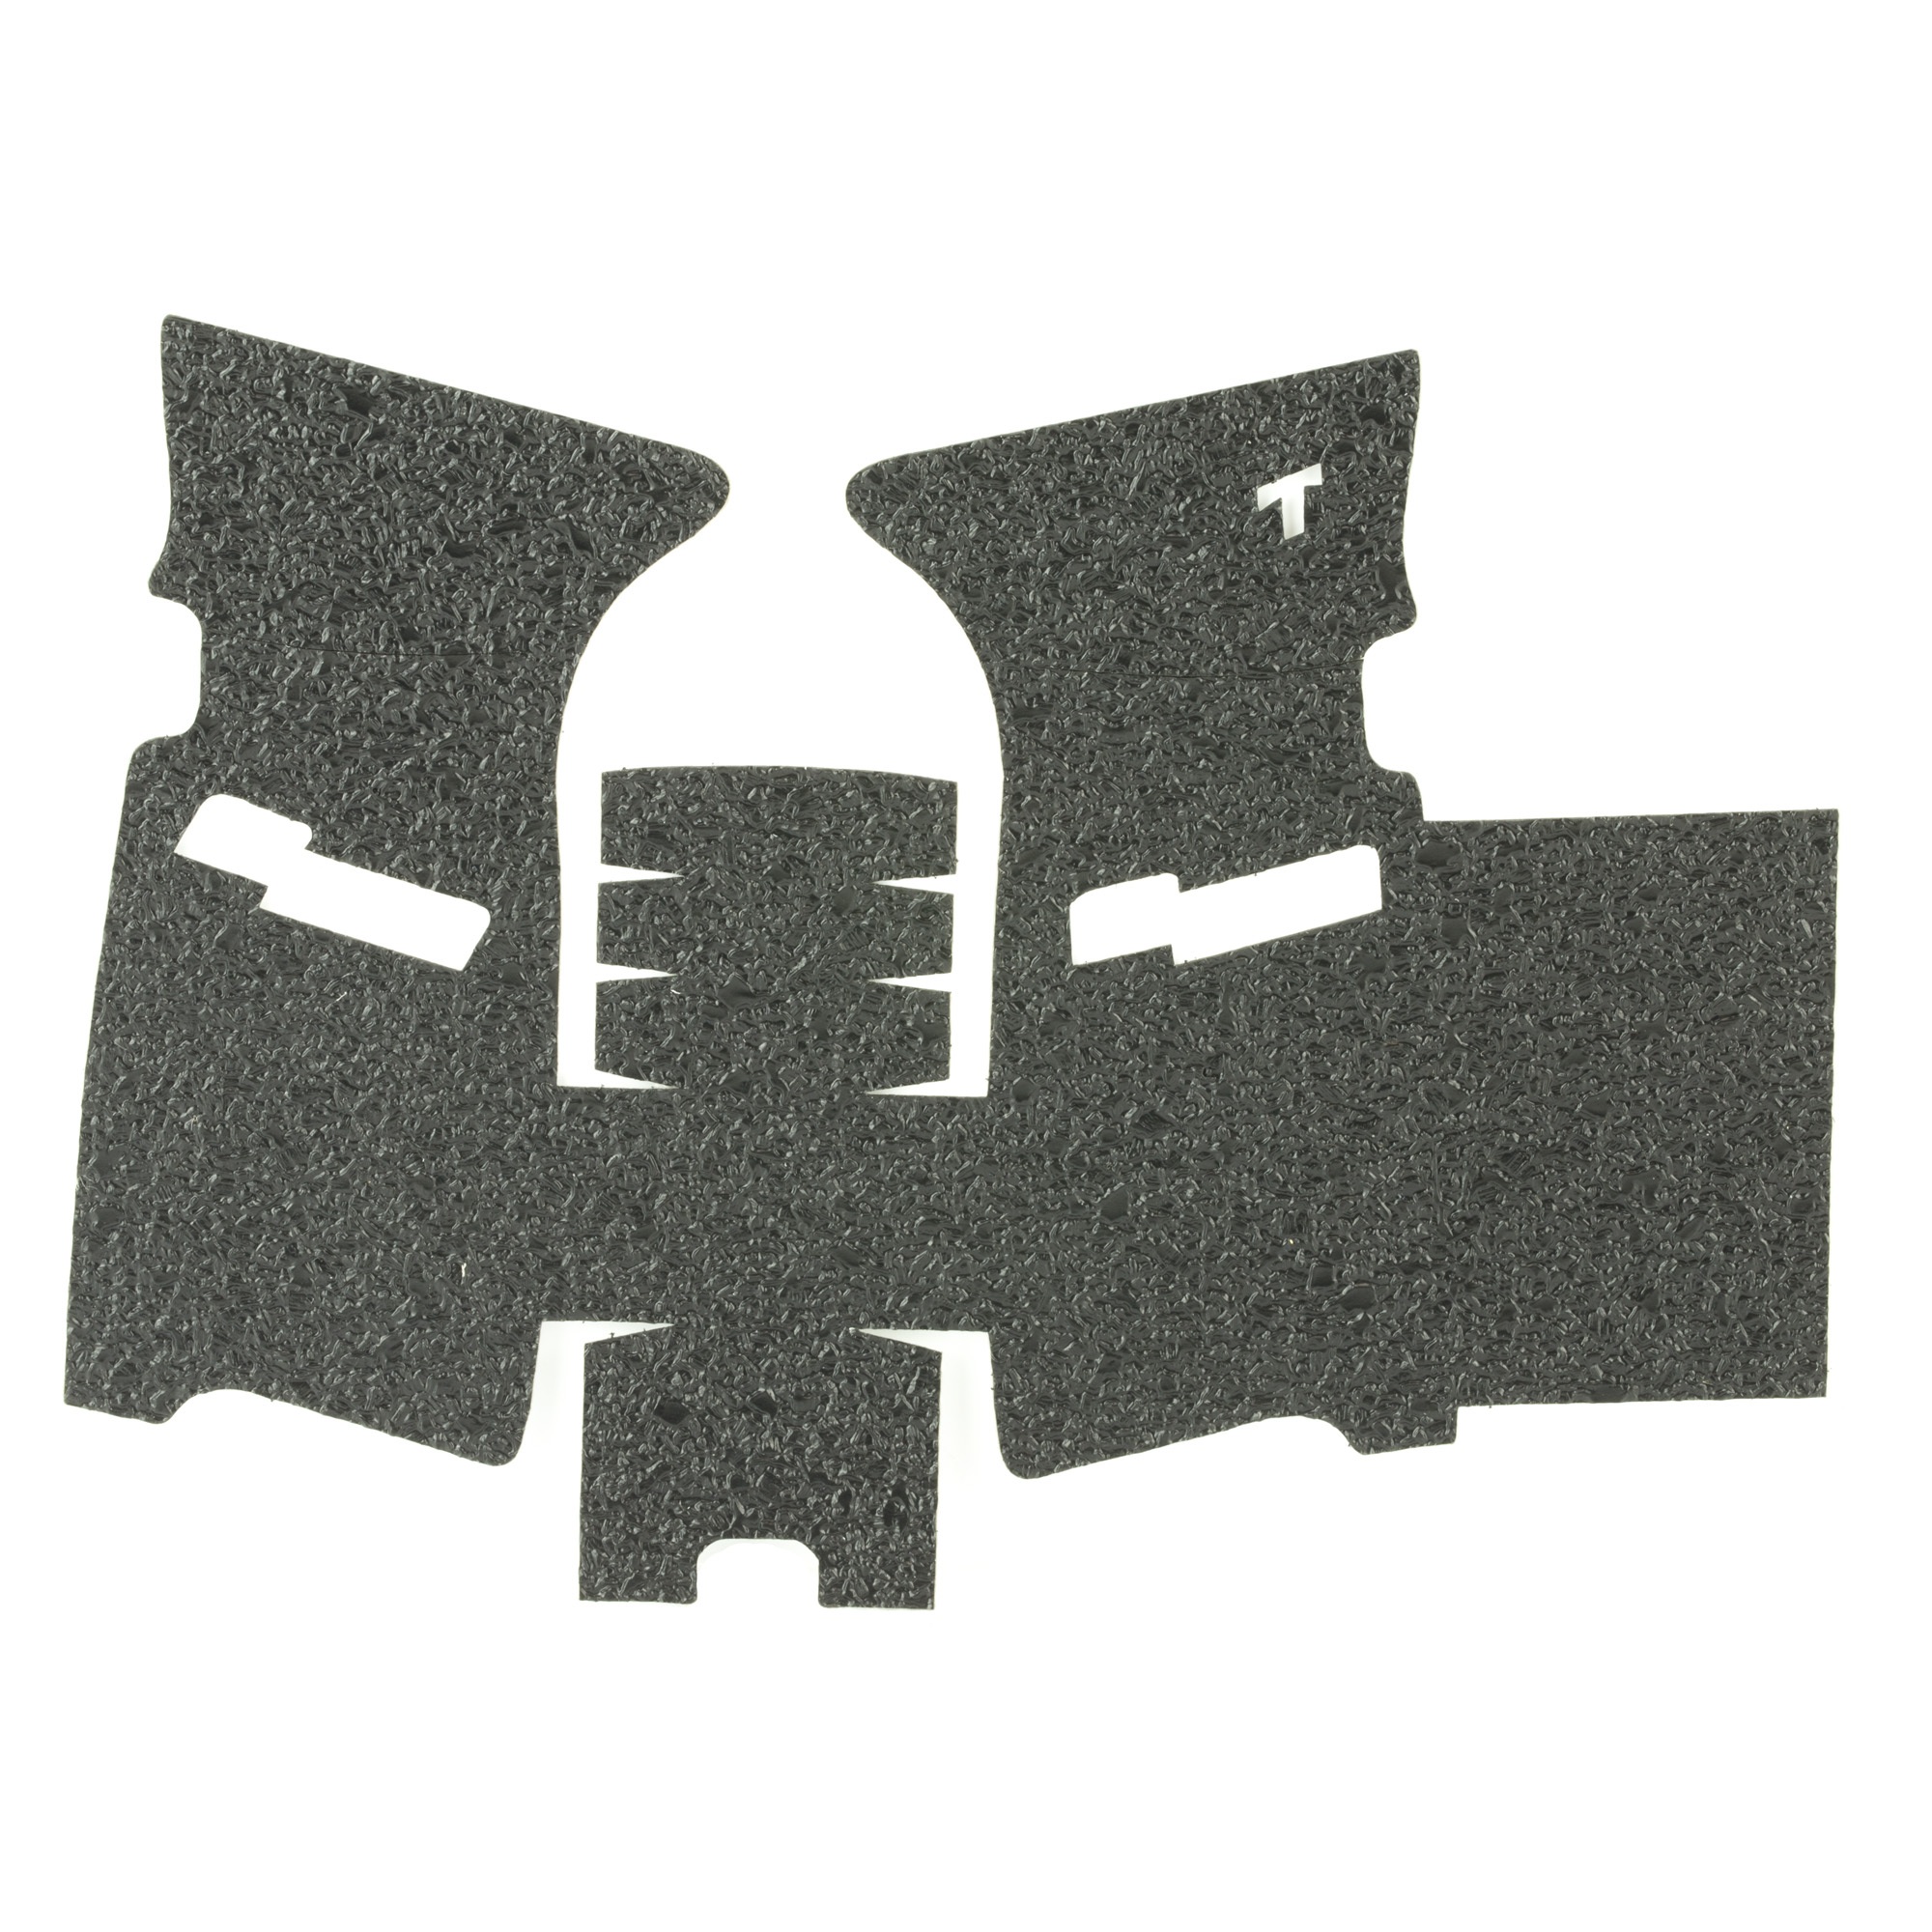 """TALON Grips for Sig Sauer P250 and P320 9mm/.357/.40./45 Full Size/Carry with the medium module. This rear wrap grip is in the rubber texture and offers full side panel coverage including the thumb rest area"""" full coverage under the trigger guard"""" and high coverage on the backstrap. This grip has a graphic cutout for the Sig Sauer emblem."""